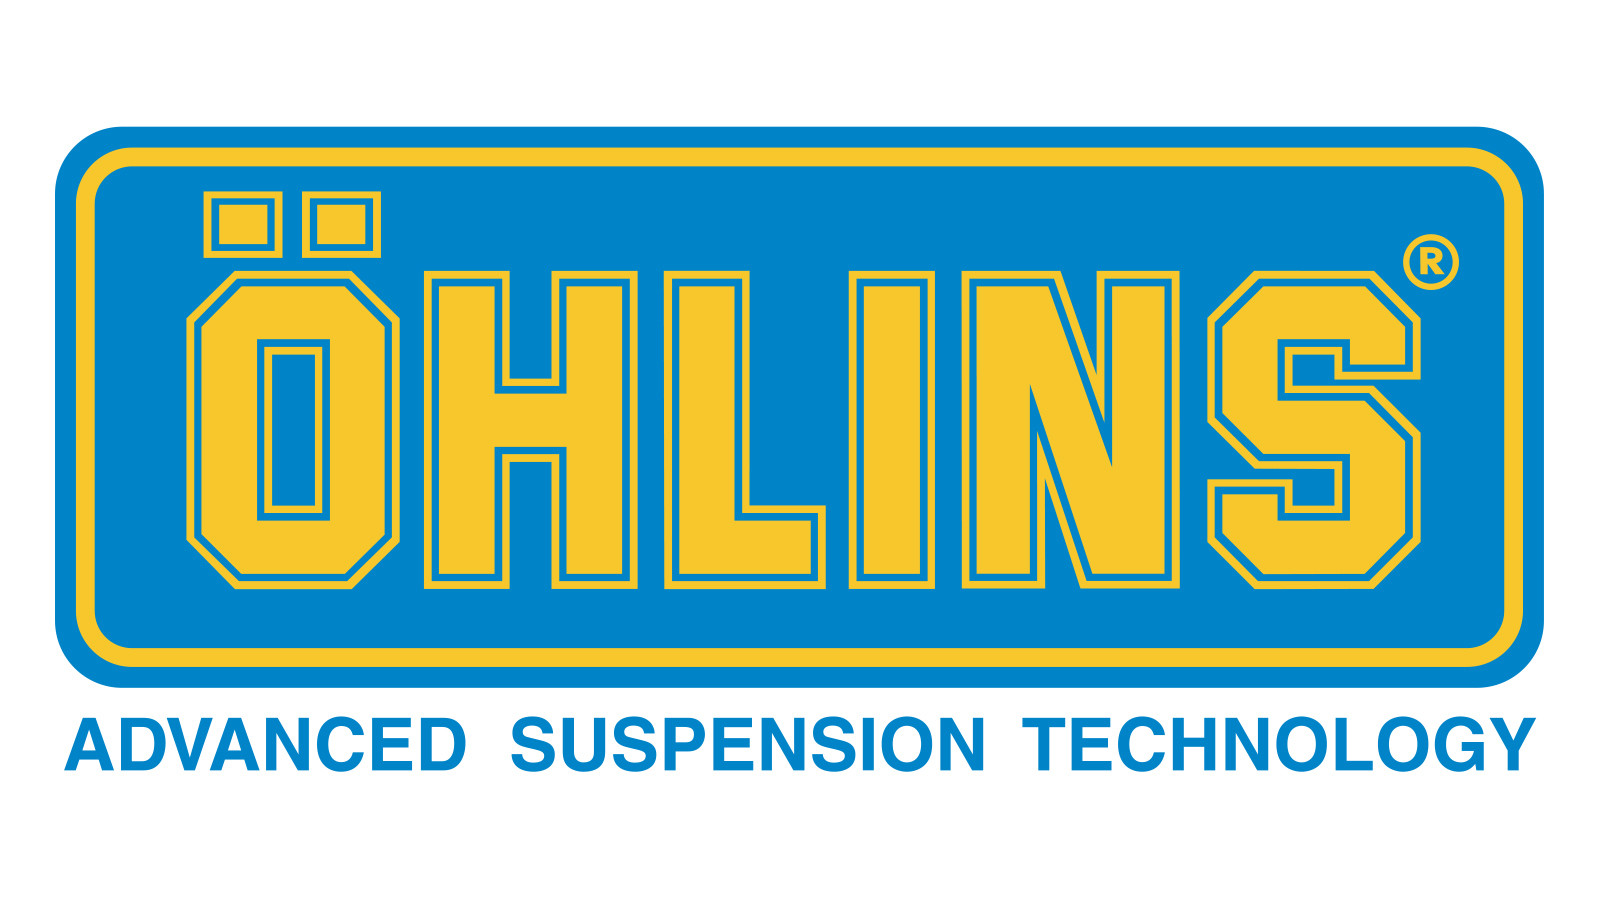 Öhlins Public Communication on Stop Ride and Stop Sales of RXF 36 Air and RXF 34 Air